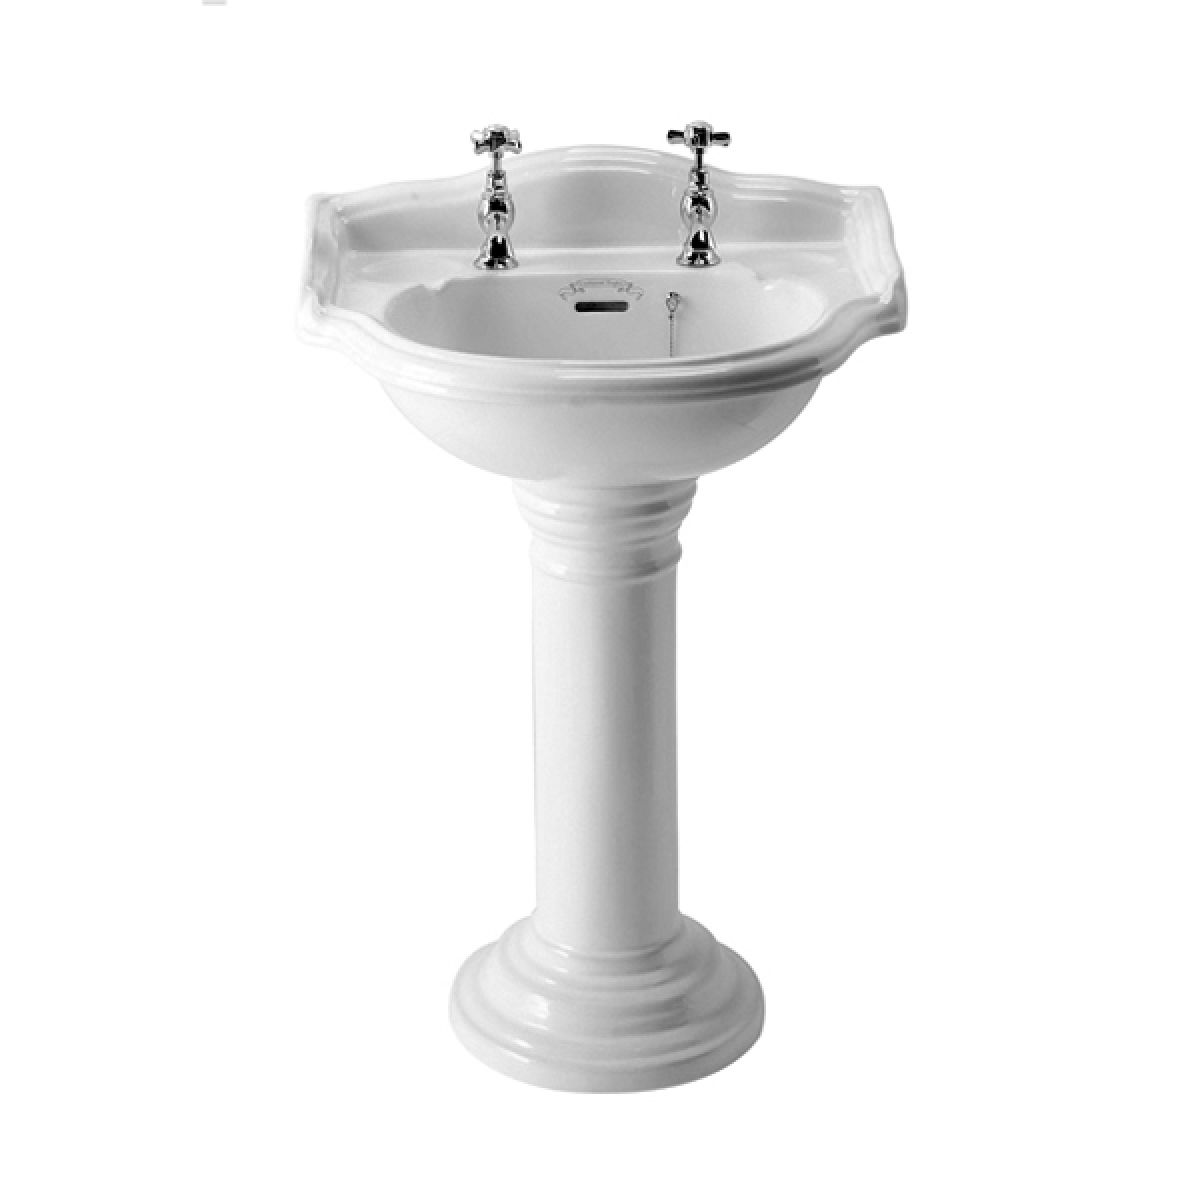 Small Basin With Pedestal : ... basin full pedestal home bathrooms basins and sinks traditional basins